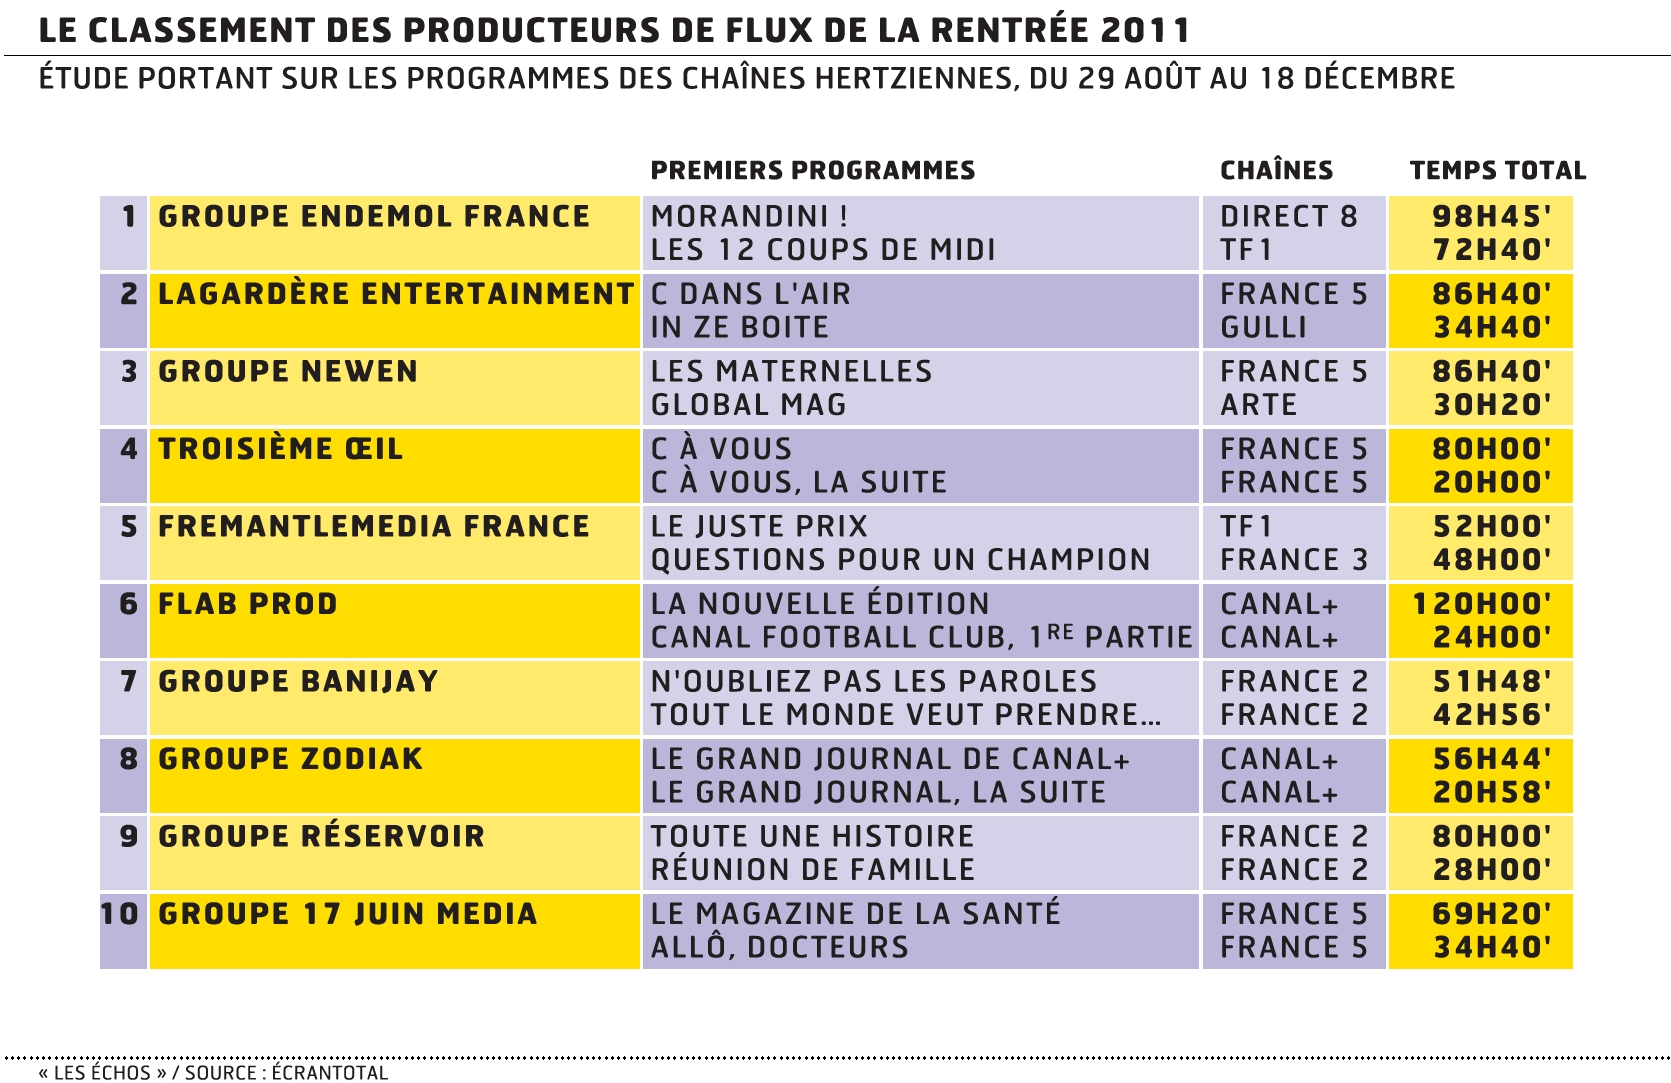 Production tv endemol premier groupe en volume horaire dans l 39 hexagone - Inscription 12 coups de midi ...